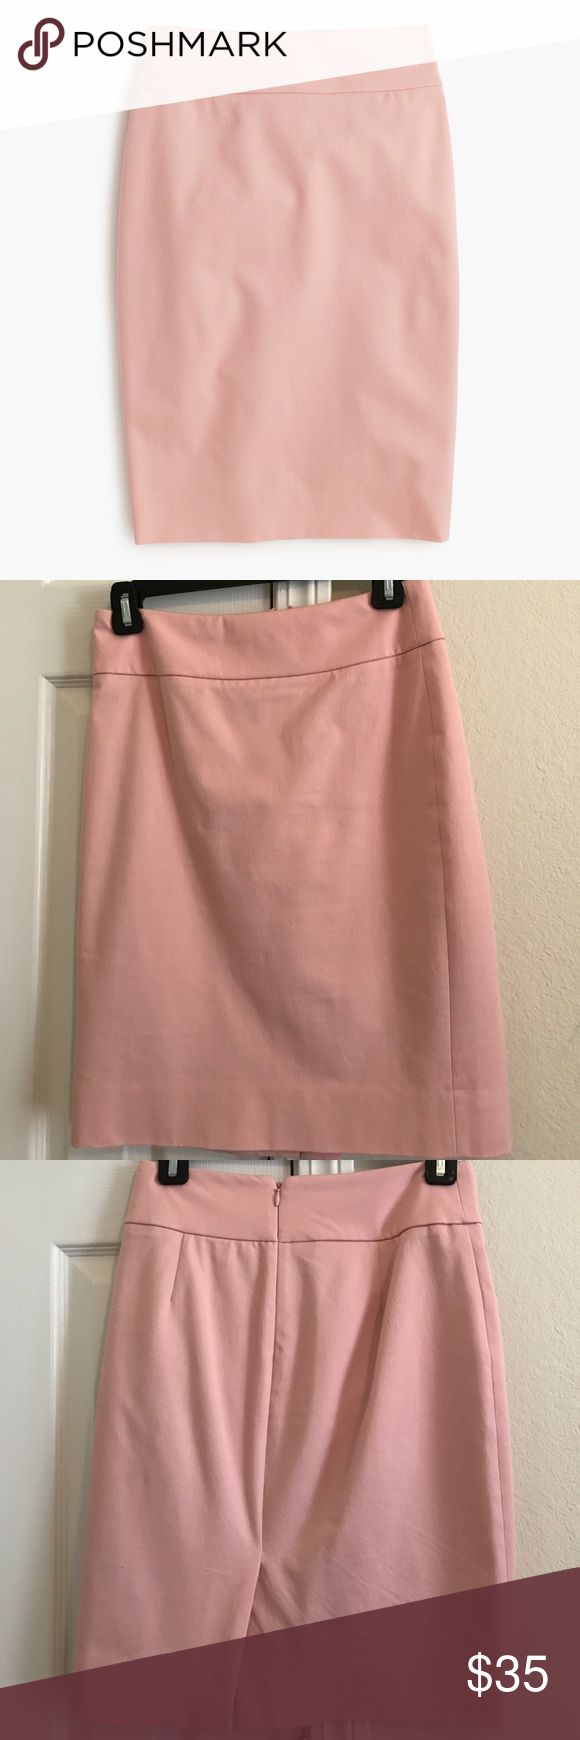 J. Crew Pink Pencil Skirt in Bi-Stretch Cotton No. 2 Pencil Skirt in Bi-Stretch Cotton from J. Crew's suiting line. The light pink color goes great with navy, black, white, green, you name it! Gently used, needs to be ironed but no other flaws. First photo is from J. Crew & the rest are of my item. Dry clean only. Perfect for work! Also selling the same skirt in khaki if you'd like to bundle. J. Crew Skirts Pencil